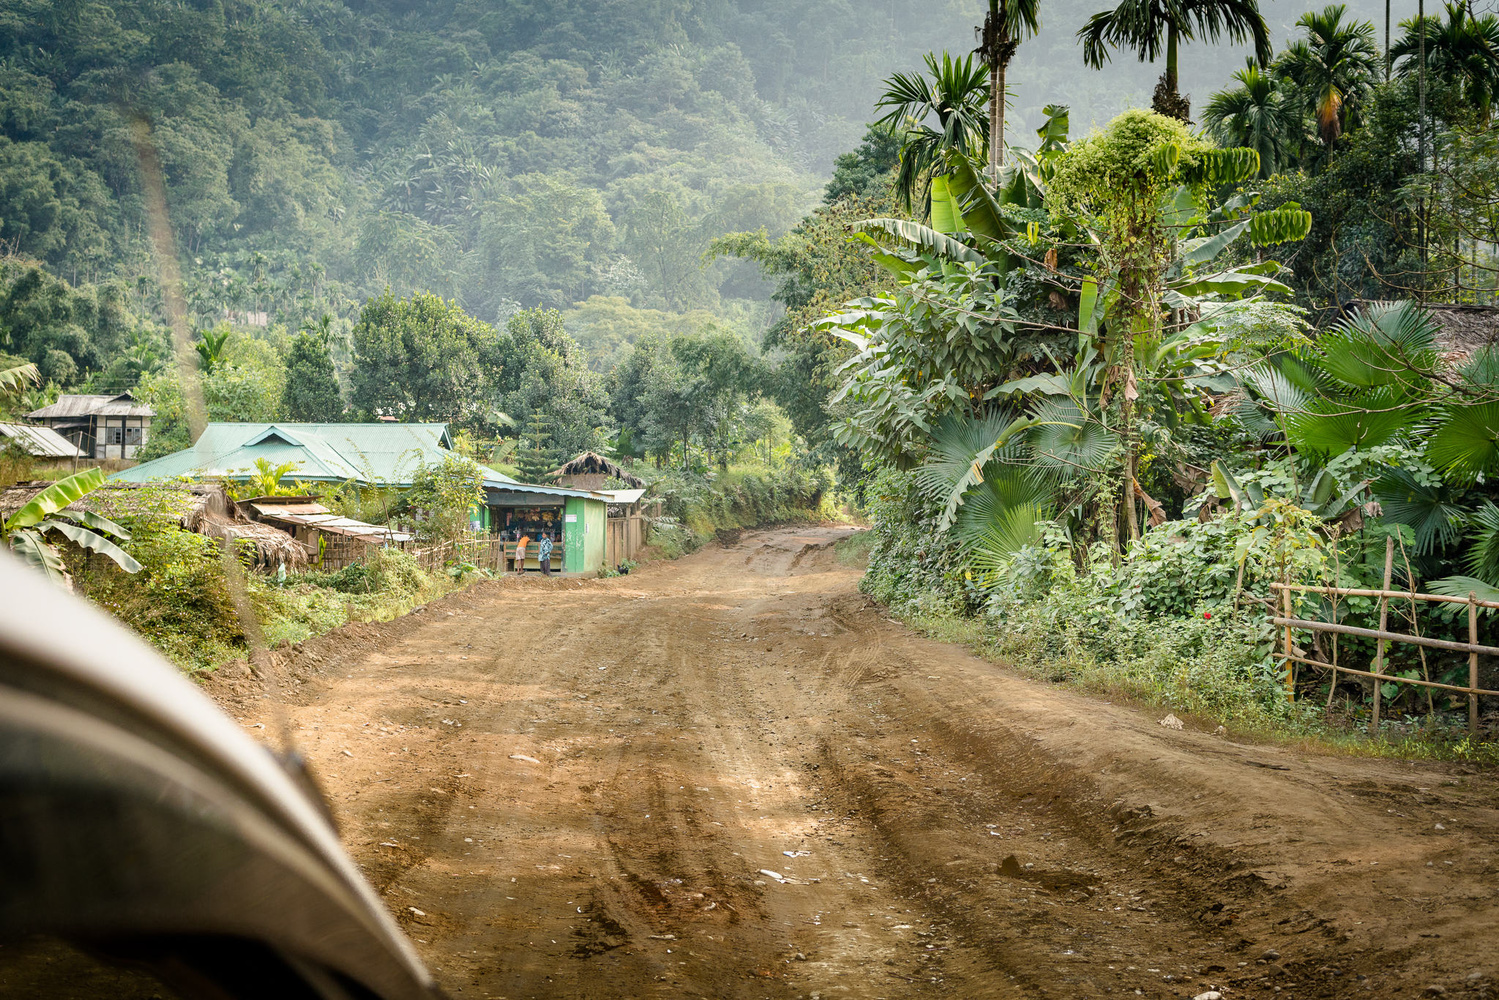 Off road in Nagaland